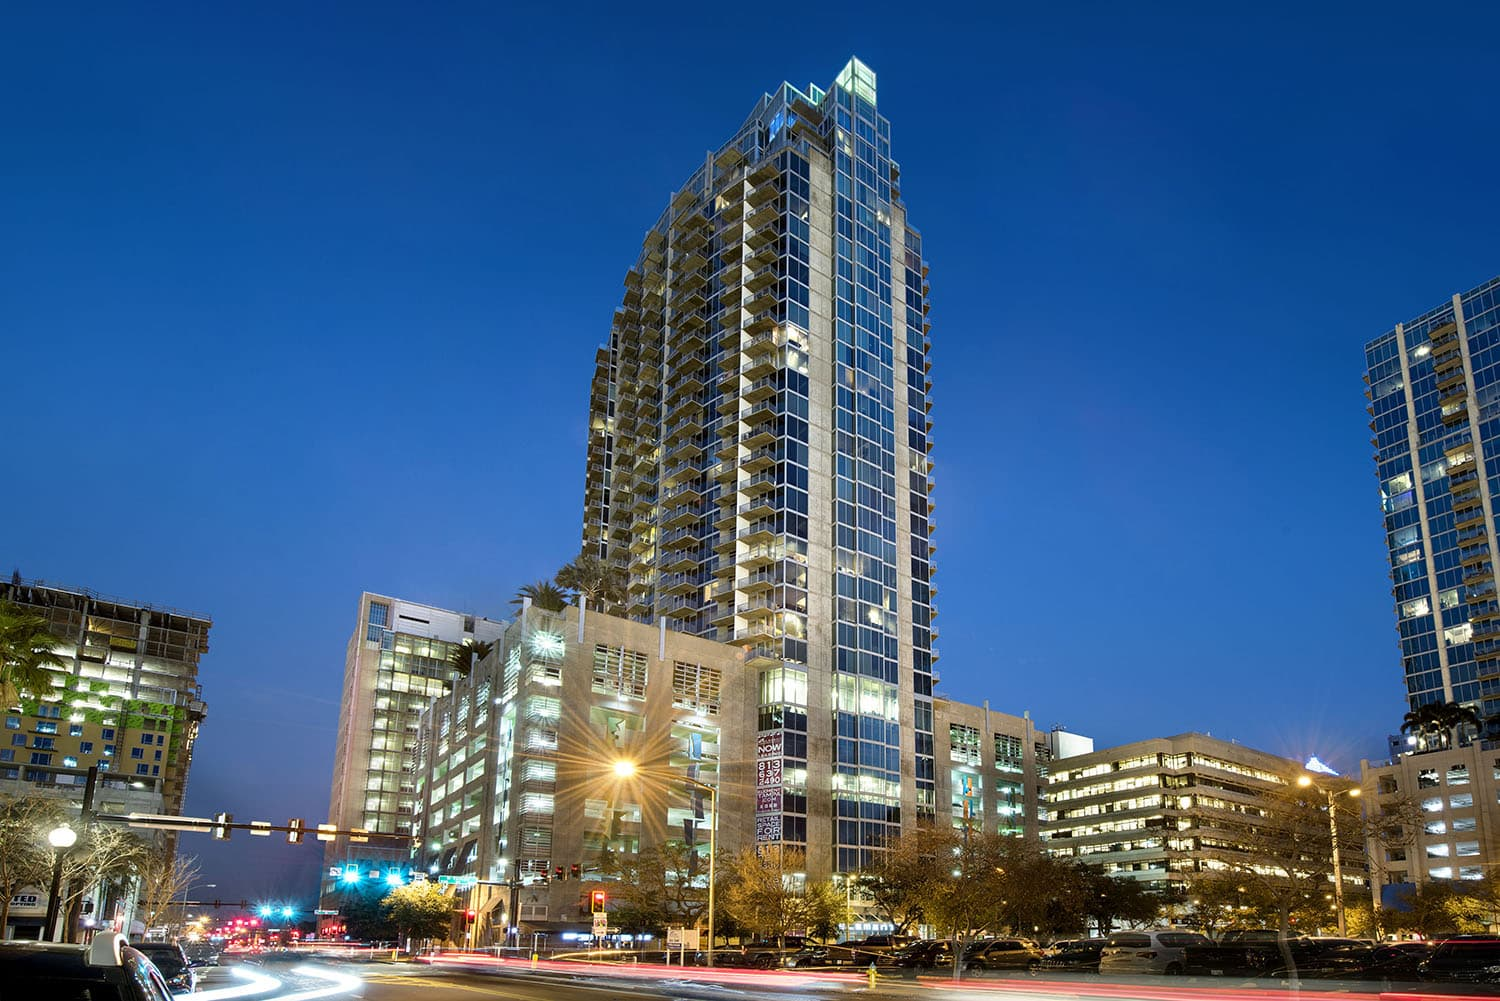 Element Is A 35 Story High Rise Apartment Community In Downtown Tampa That Offers The Best Location For Live Work Play Located Next To